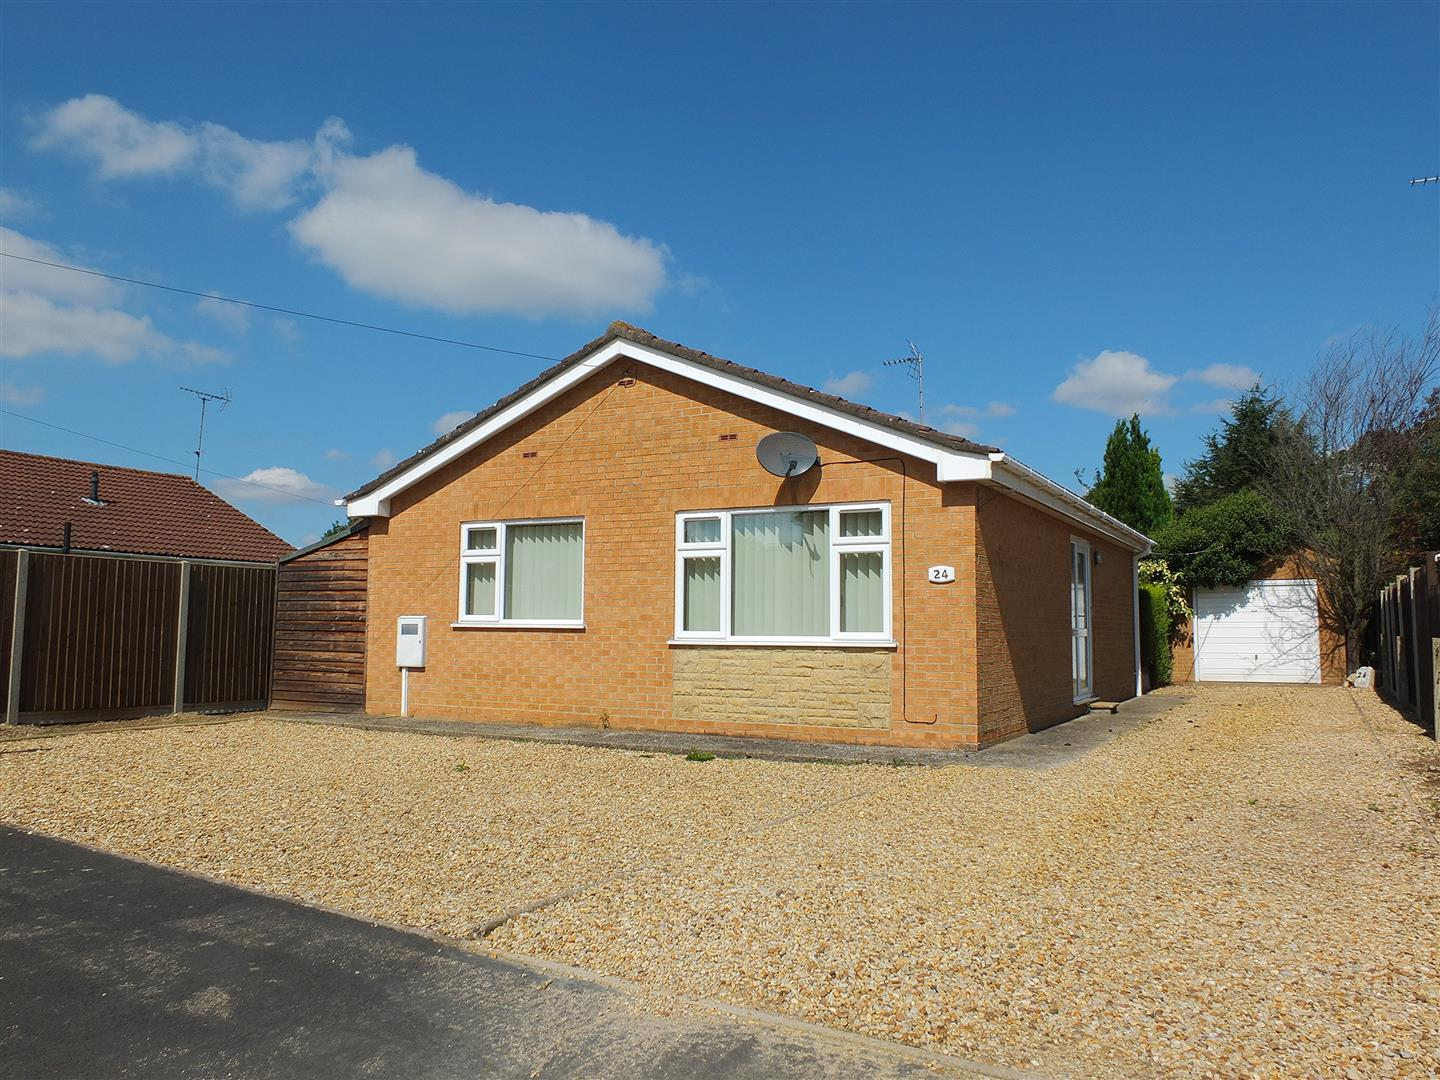 2 bed detached bungalow for sale in Long Sutton Spalding, PE12 9BQ - Property Image 1